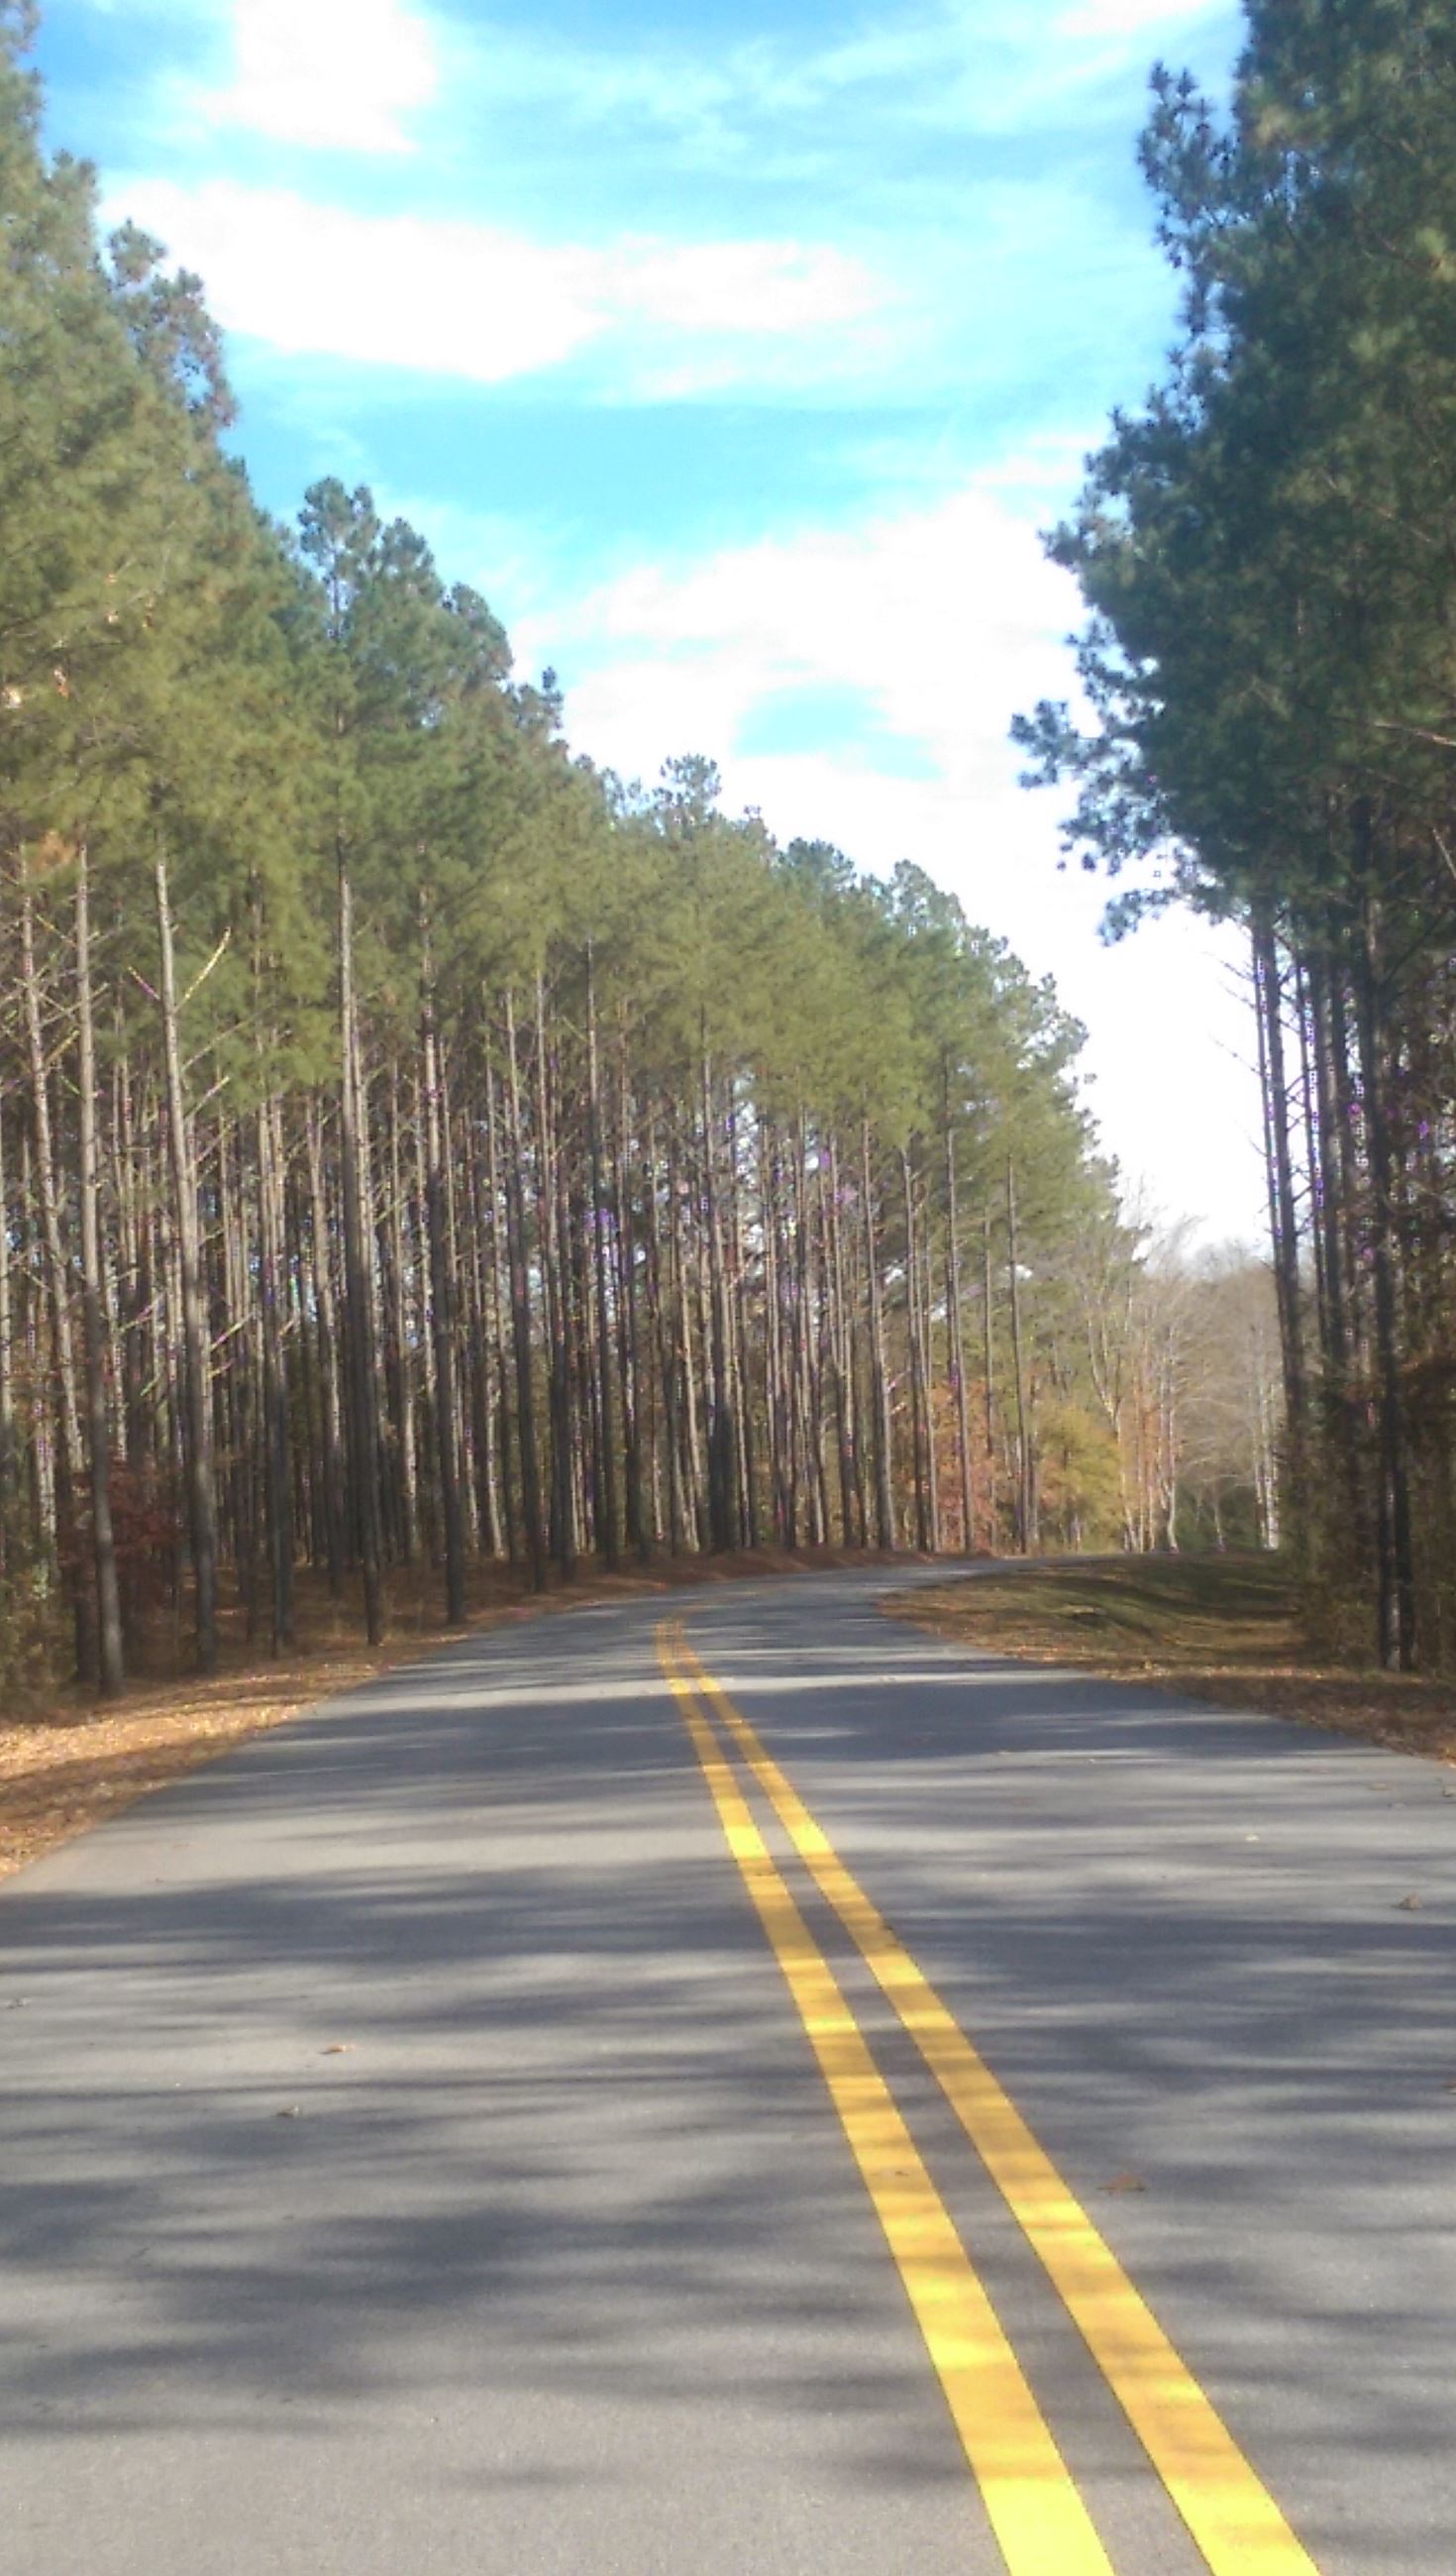 tallapoosa senior singles Find tallapoosa homes for sale with the real estate book view property listings and connect with real estate agents in tallapoosa, ga.